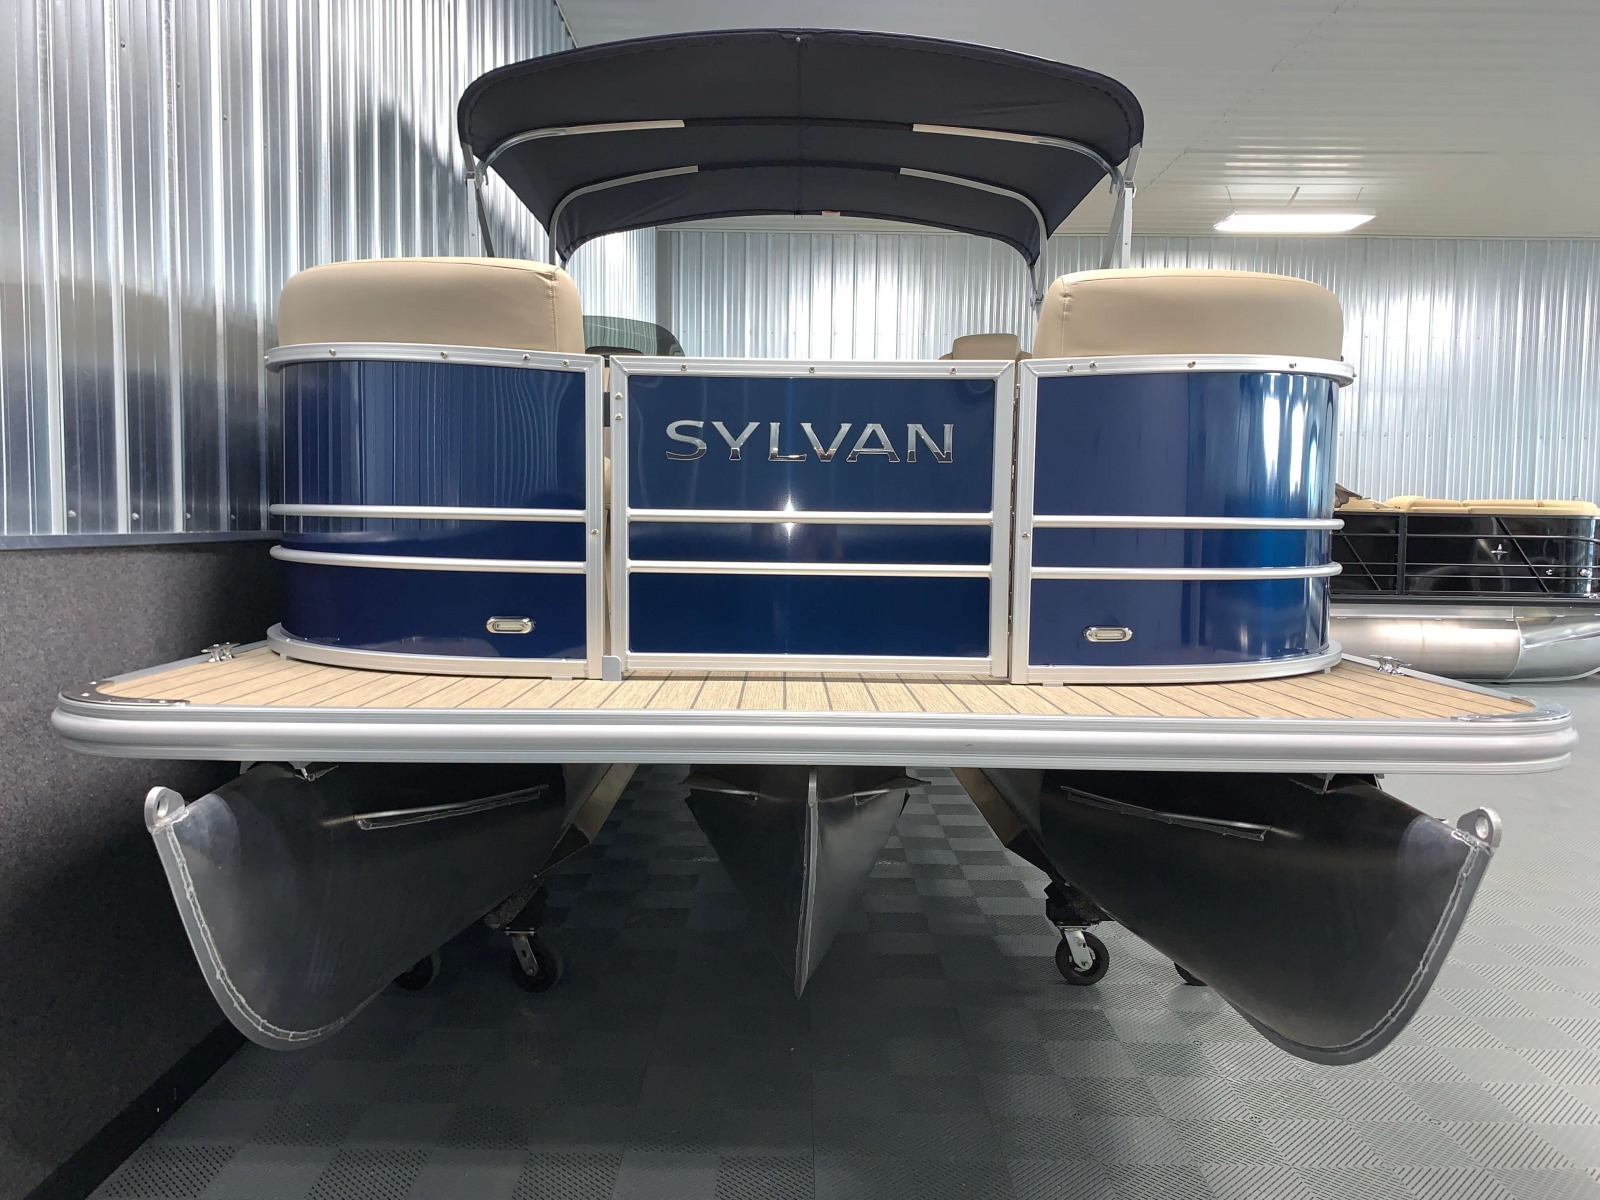 SPX Tritoon Package of a 2021 Sylvan Mirage 8520 LZ Tritoon Boat